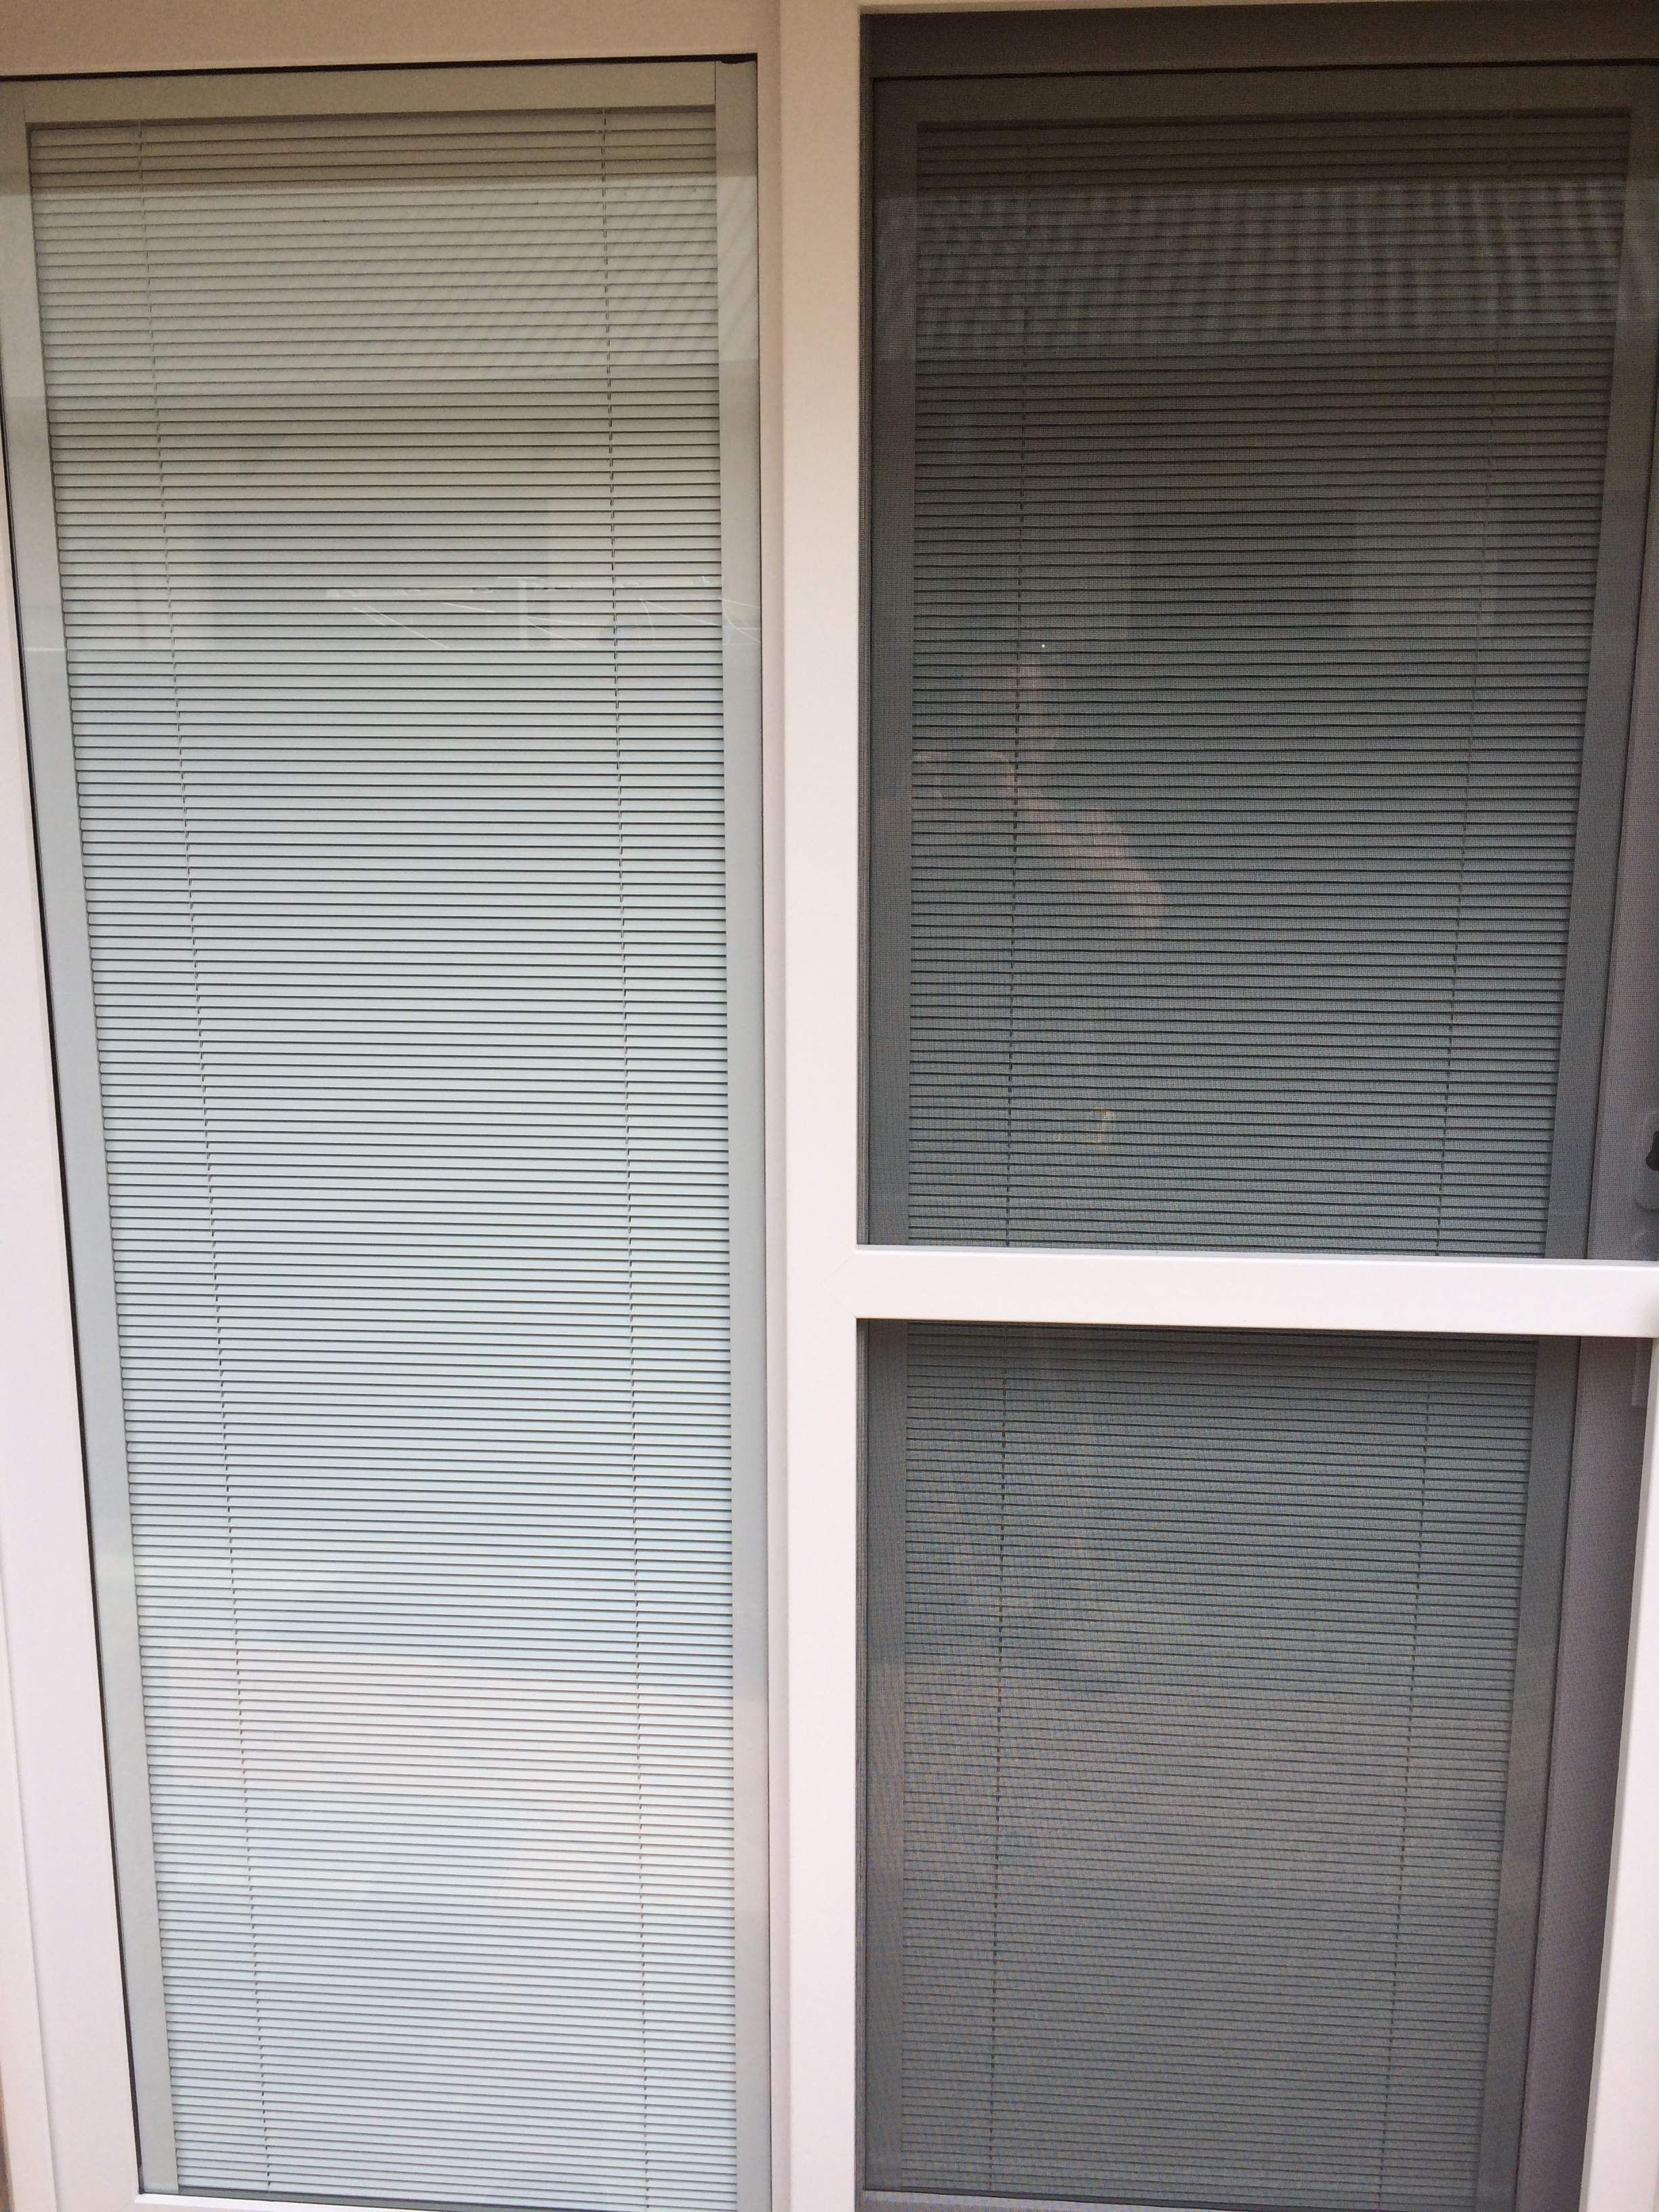 Venetian Blinds in the Glass